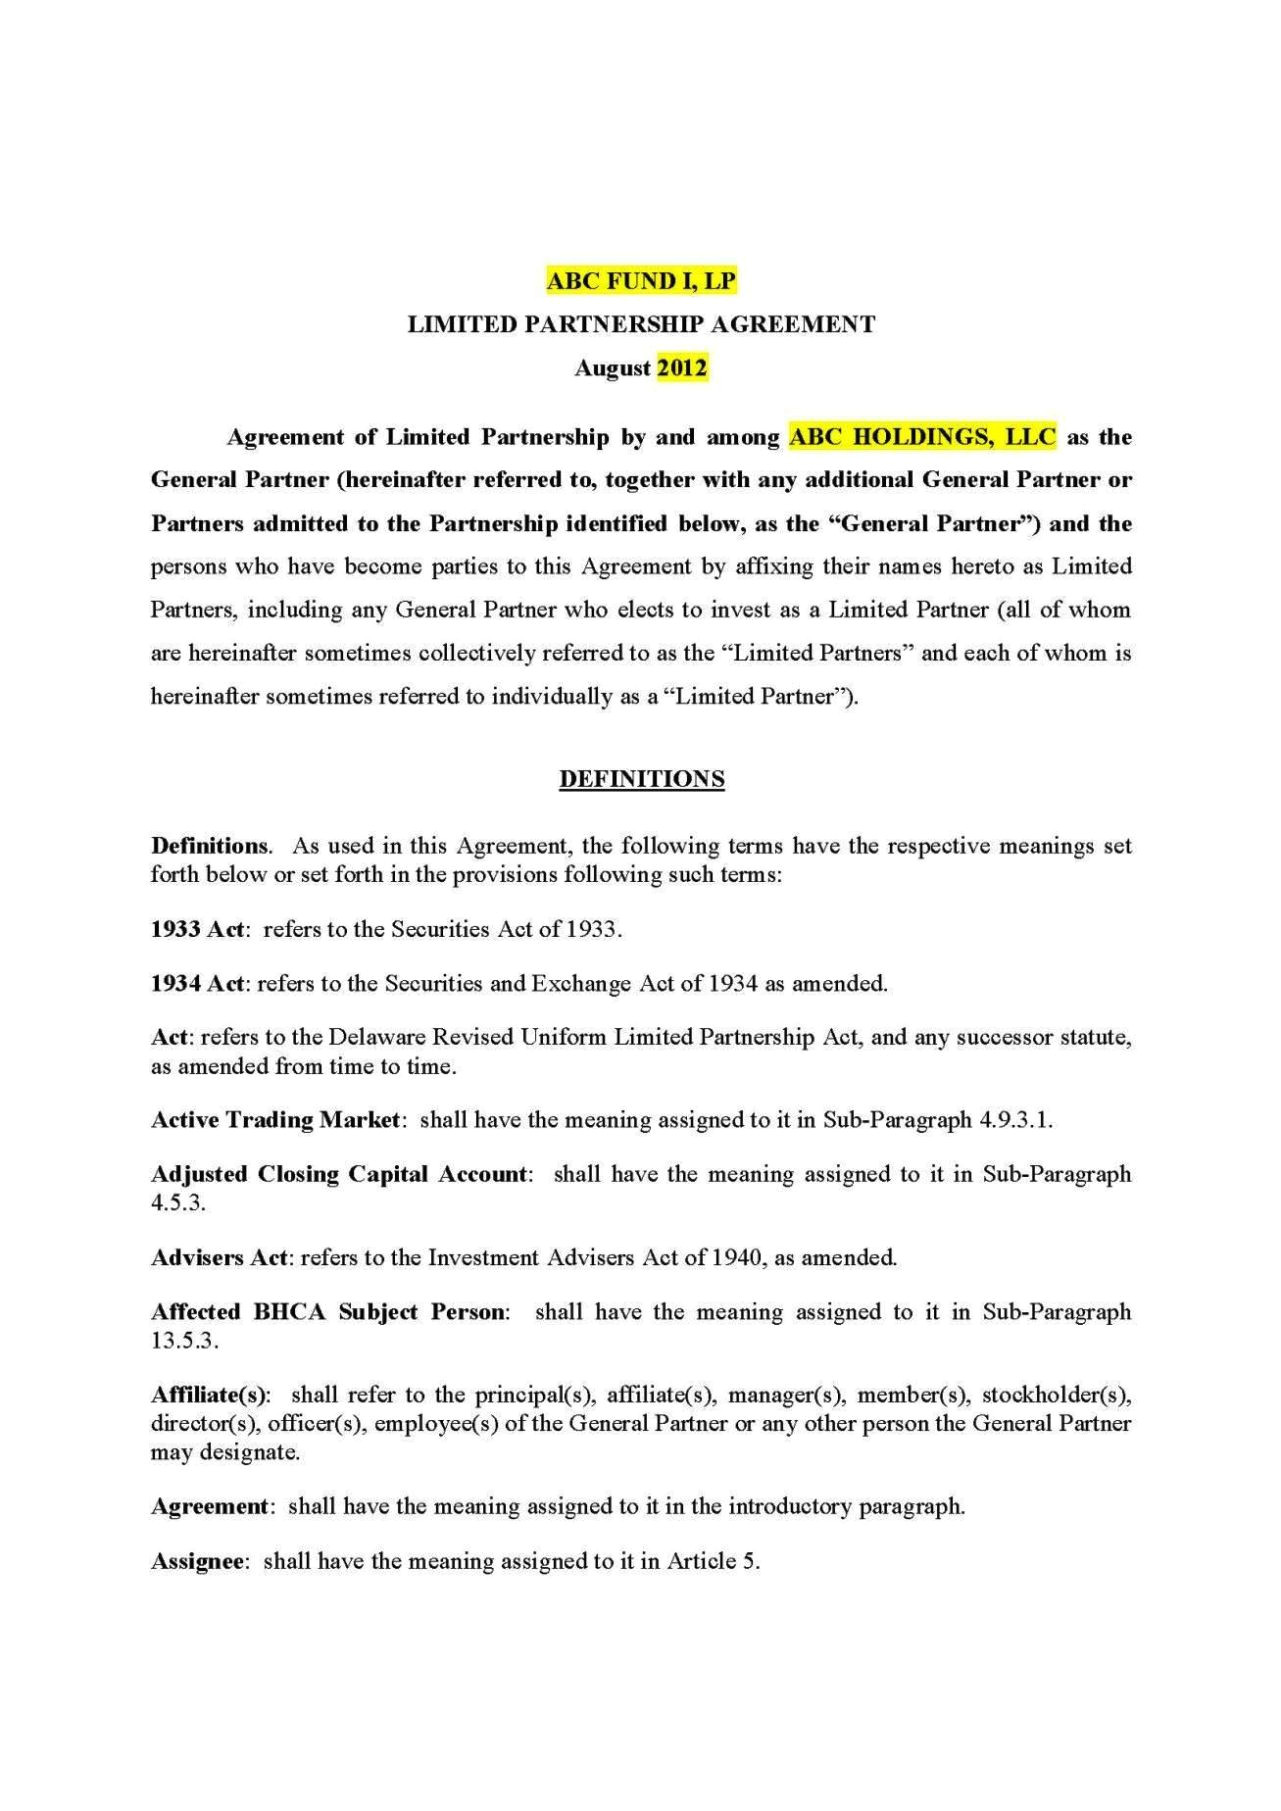 Sweat Equity Contract Template Sweat Equity Agreement Template Sampletemplatess